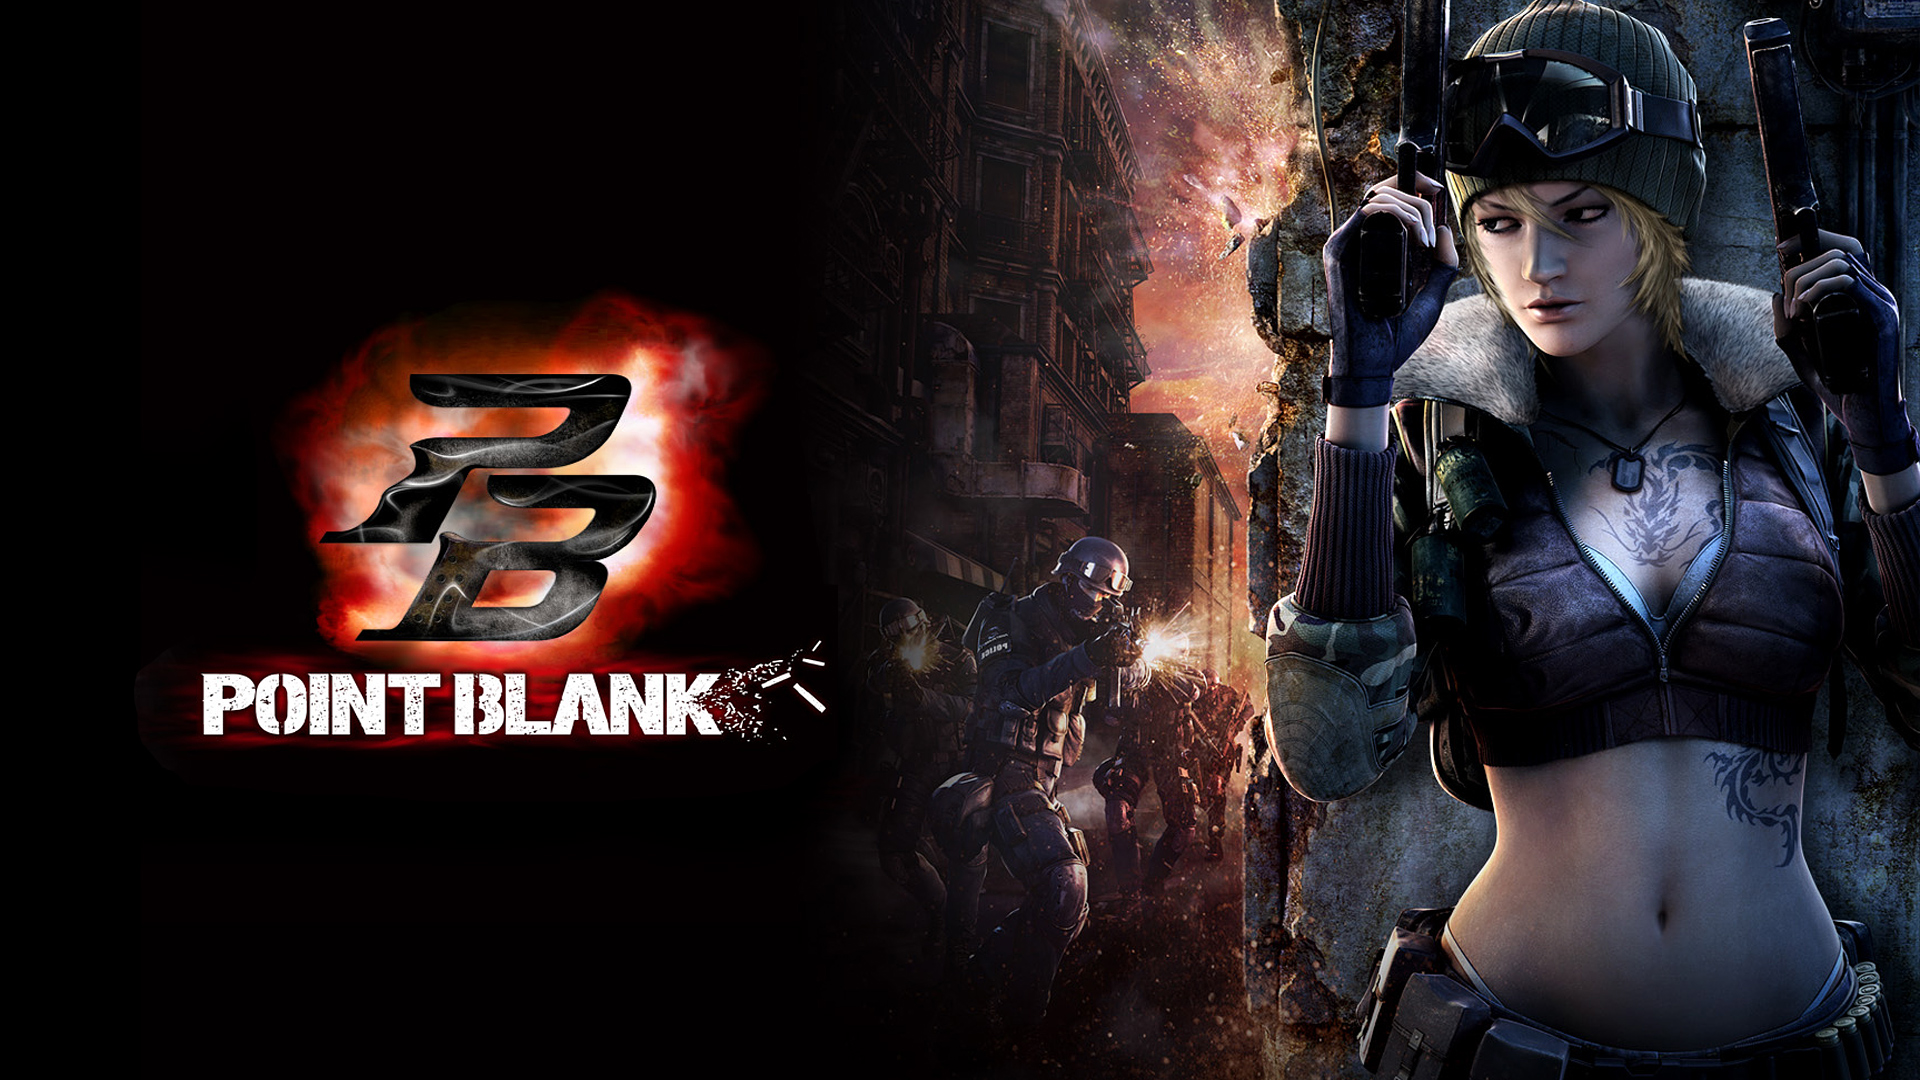 point-blank-console-games-page-951325